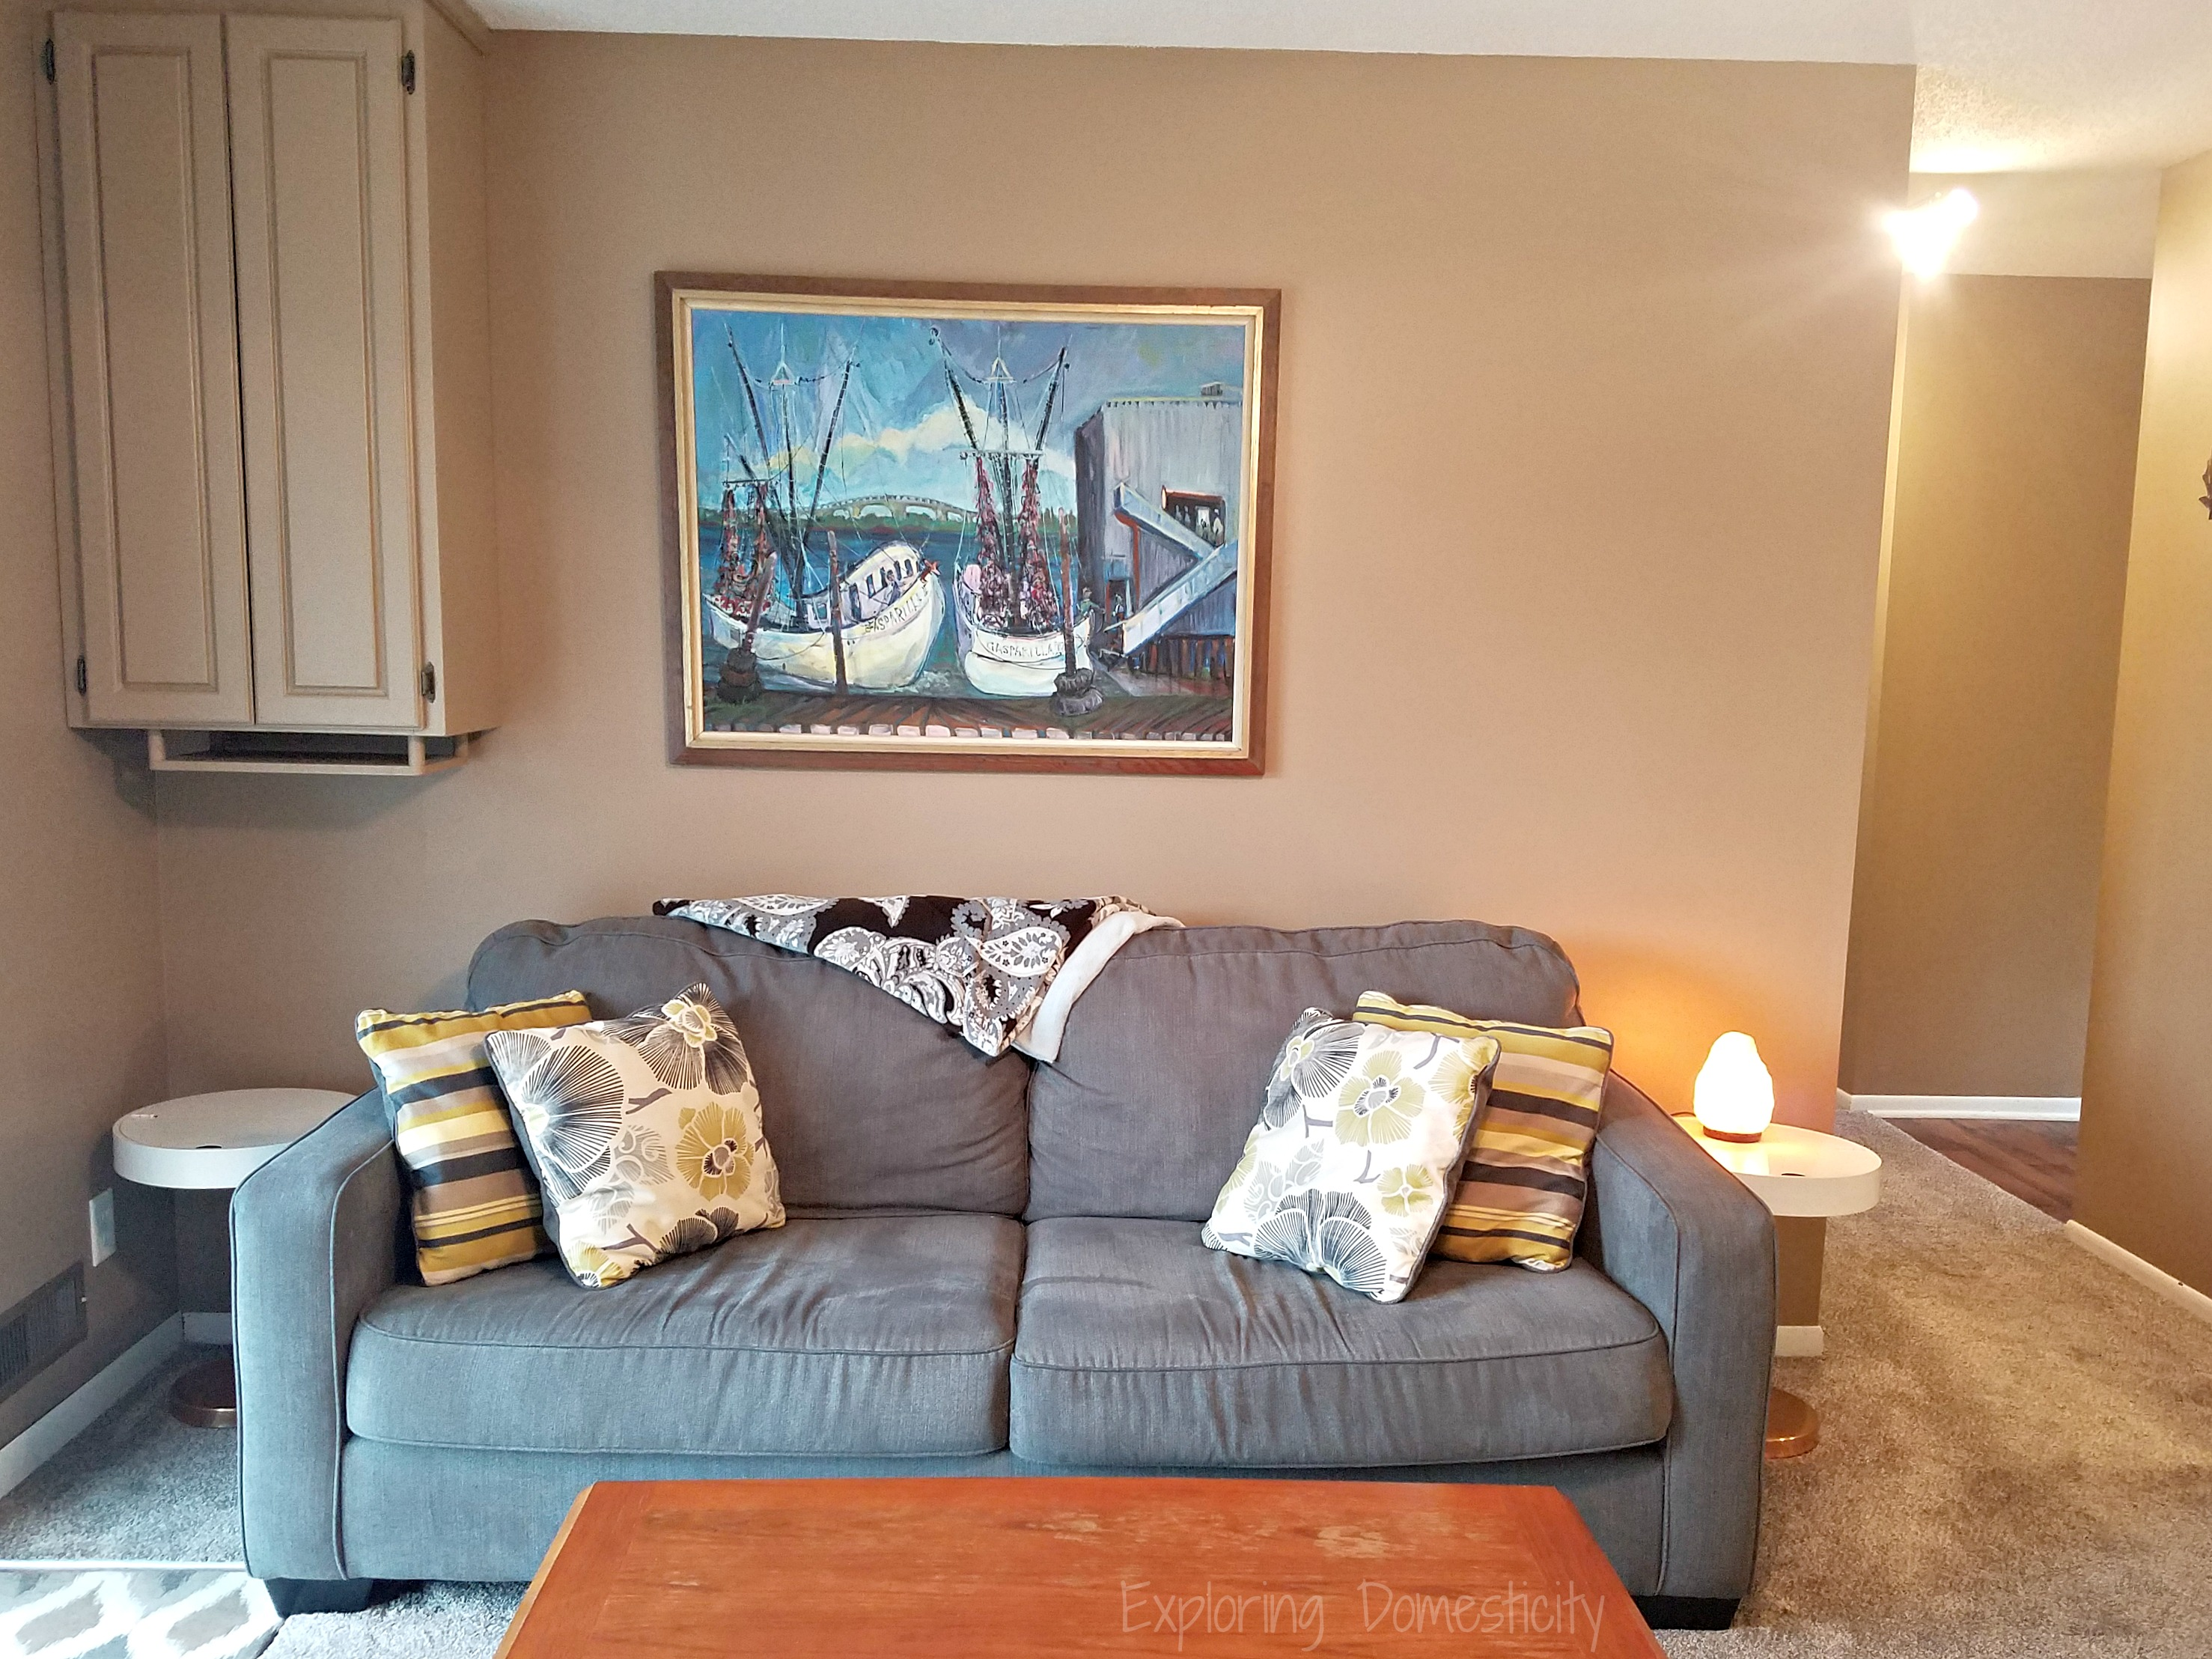 How To Make Your Room Look Bigger Staging Tips To Make A Small House Look Bigger And Sell